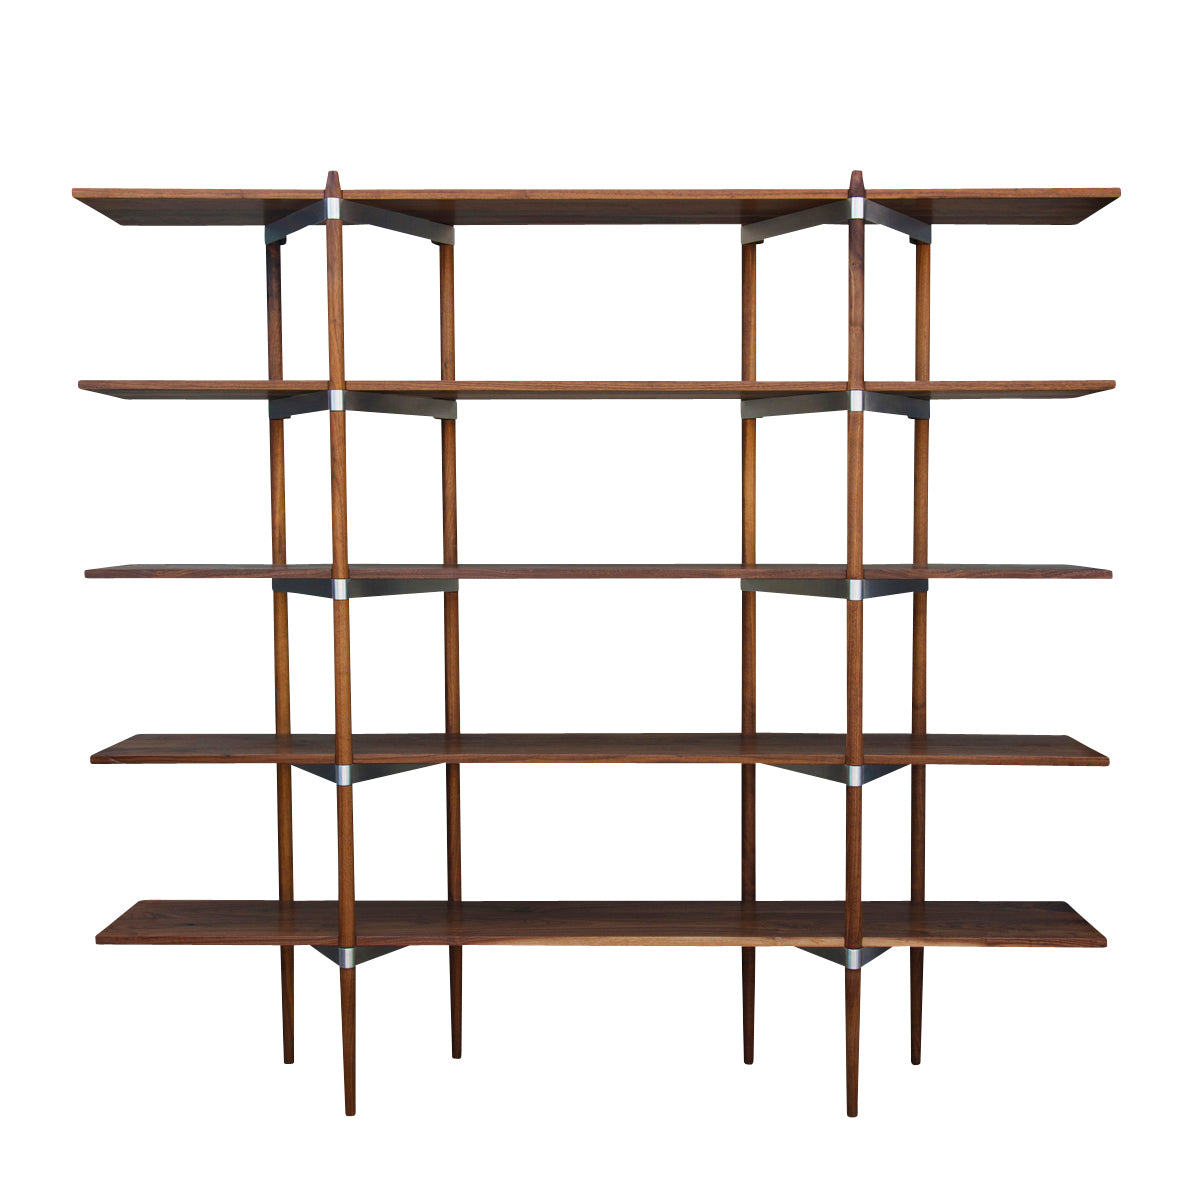 Primo Shelving System: High + Walnut + Stainless Steel